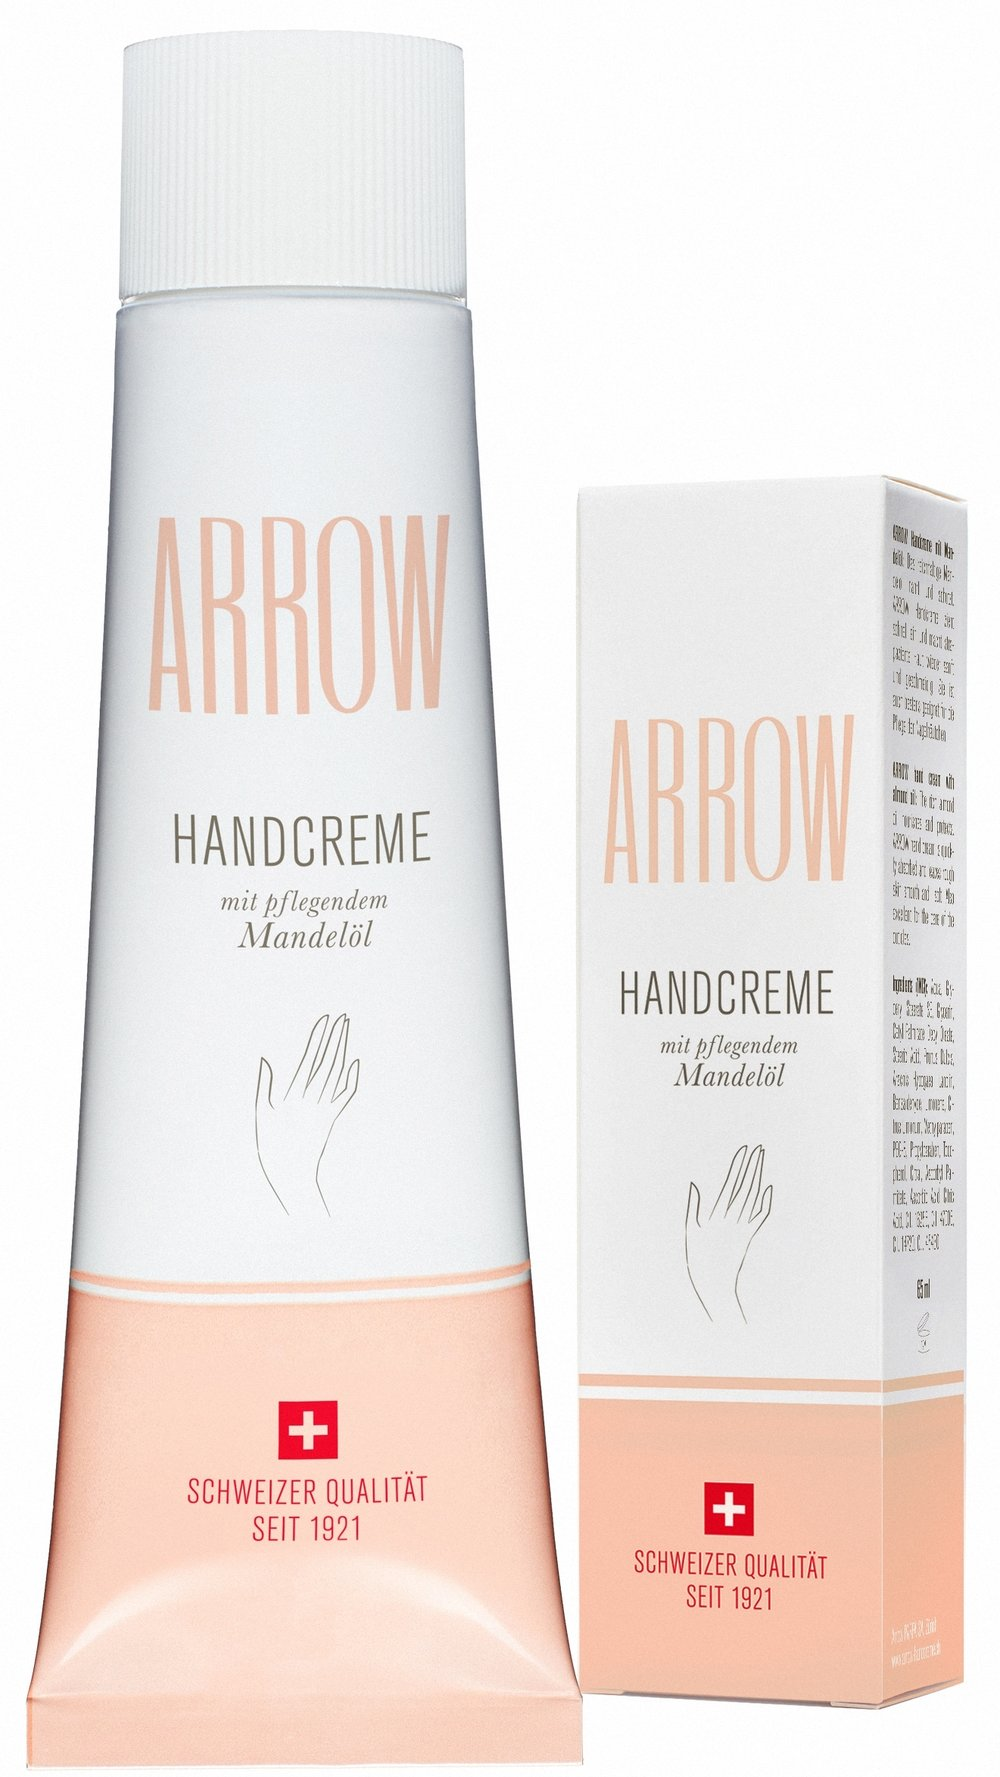 ARROW Handcreme mit pflegendem Mandelöl